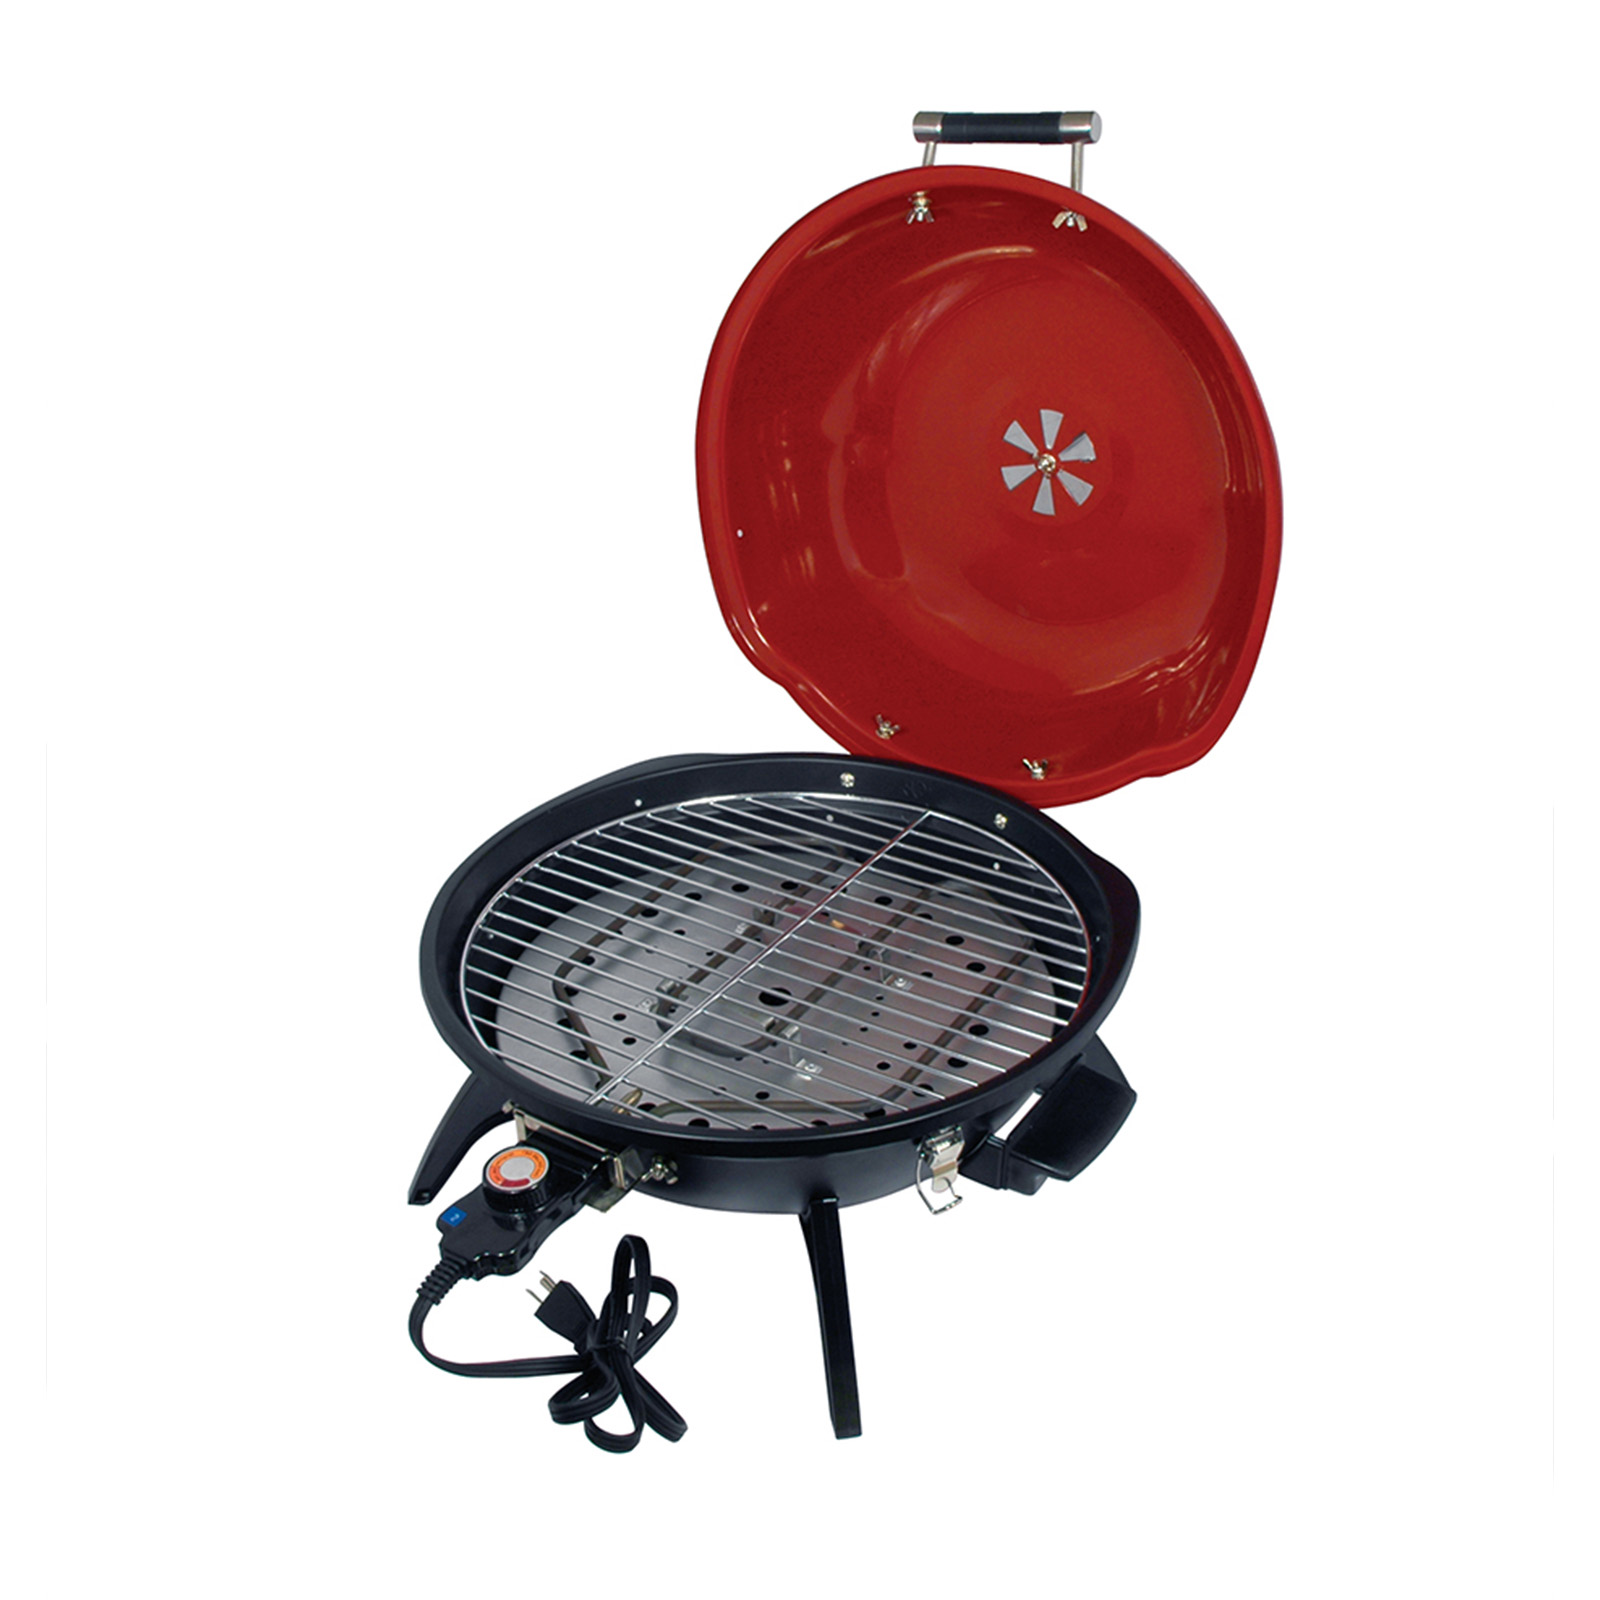 Better Chef 15-inch Electric Tabletop Barbecue Grill by Supplier Generic